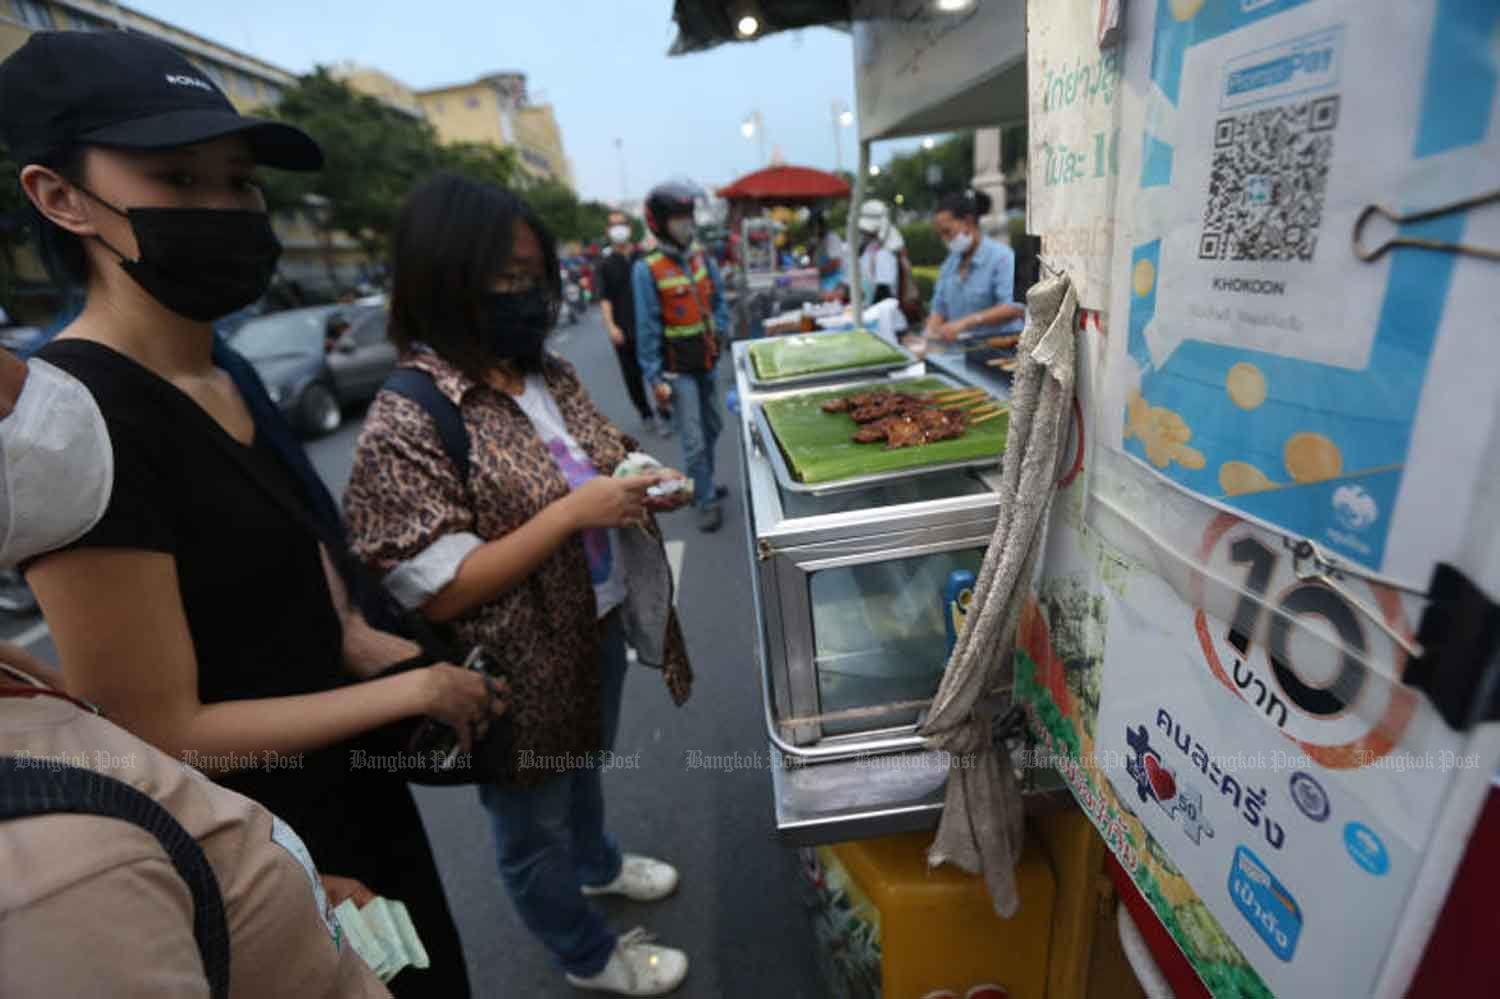 Consumers are at the stall of a food vendor who participates in the government's co-payment scheme aimed at economic stimulation, in Bangkok this month. (Photo by Varuth Hirunyatheb)